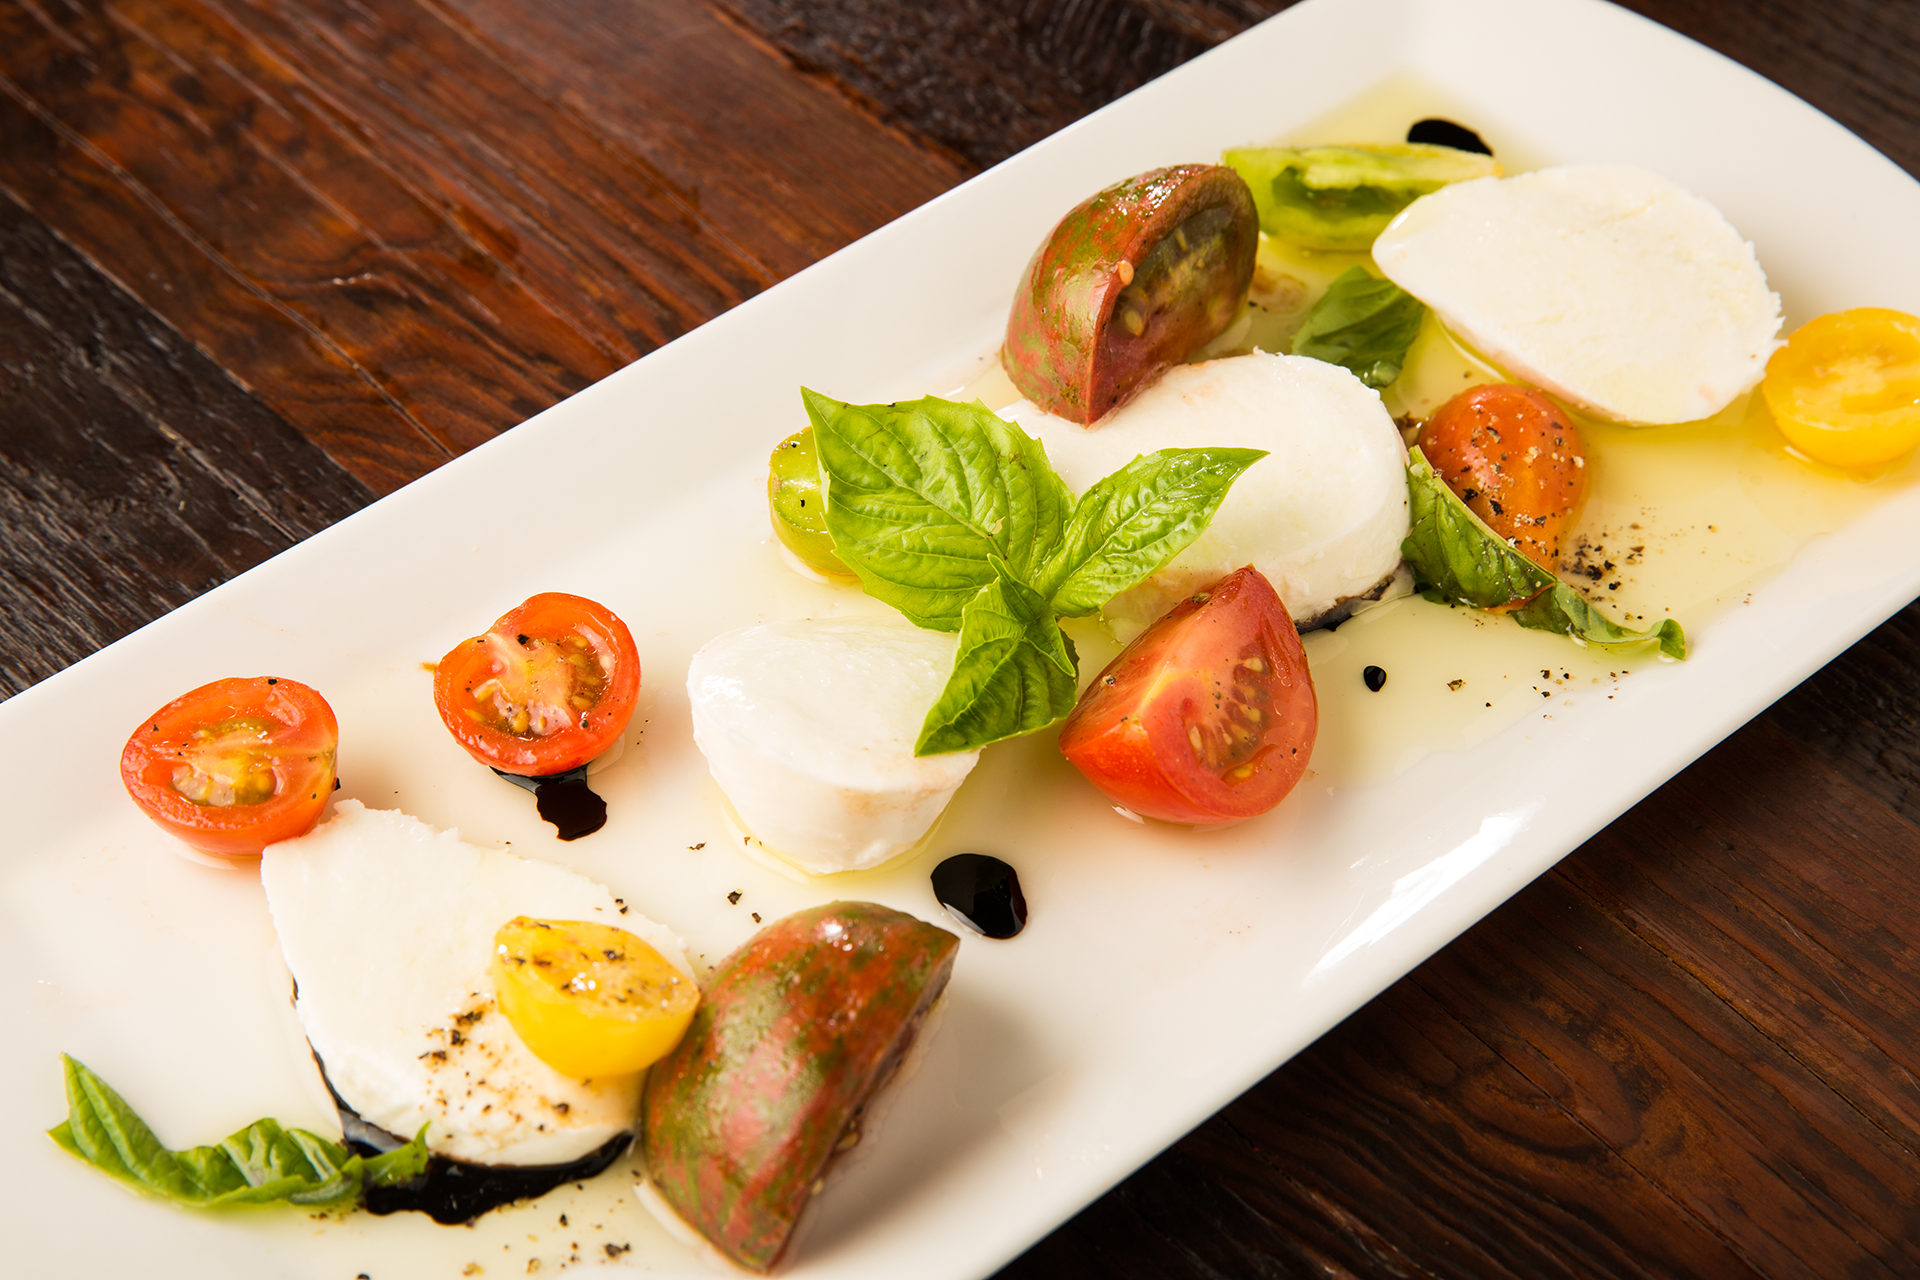 Mozzarella Cheese, Tomato Appetizer